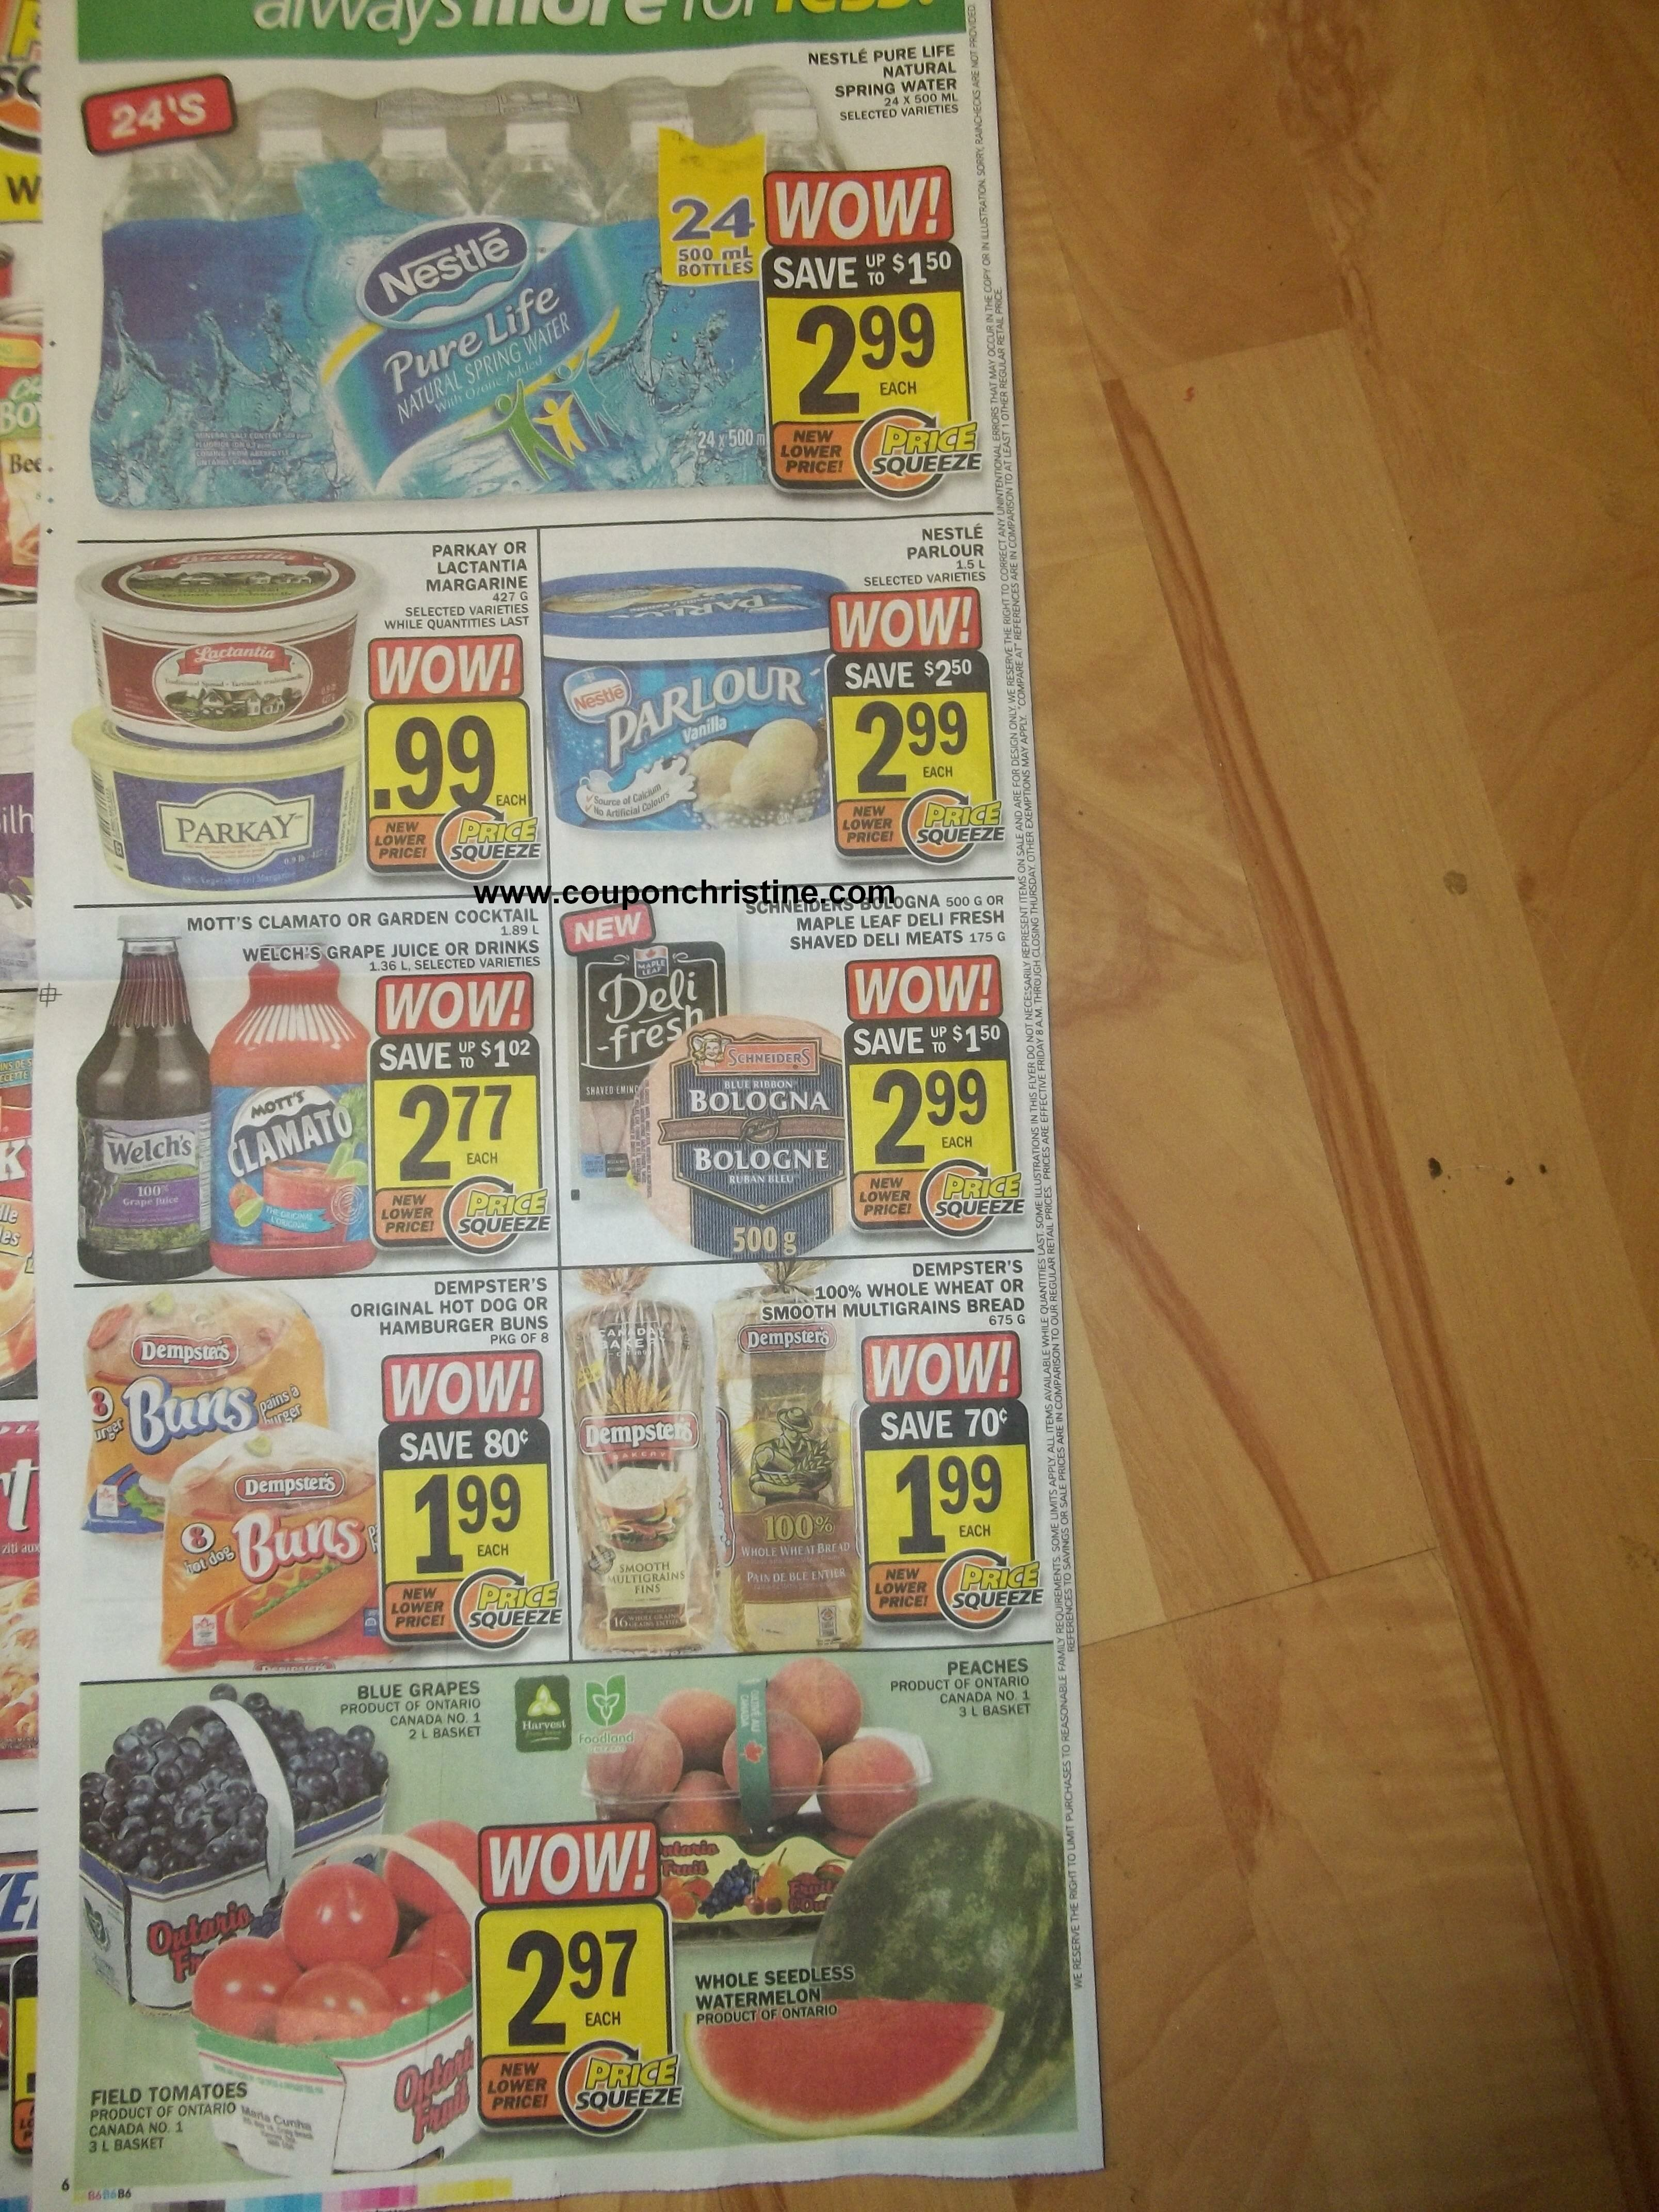 FOOD BASICS Flyer Preview (ONT) Aug 31-Sep 6 2012